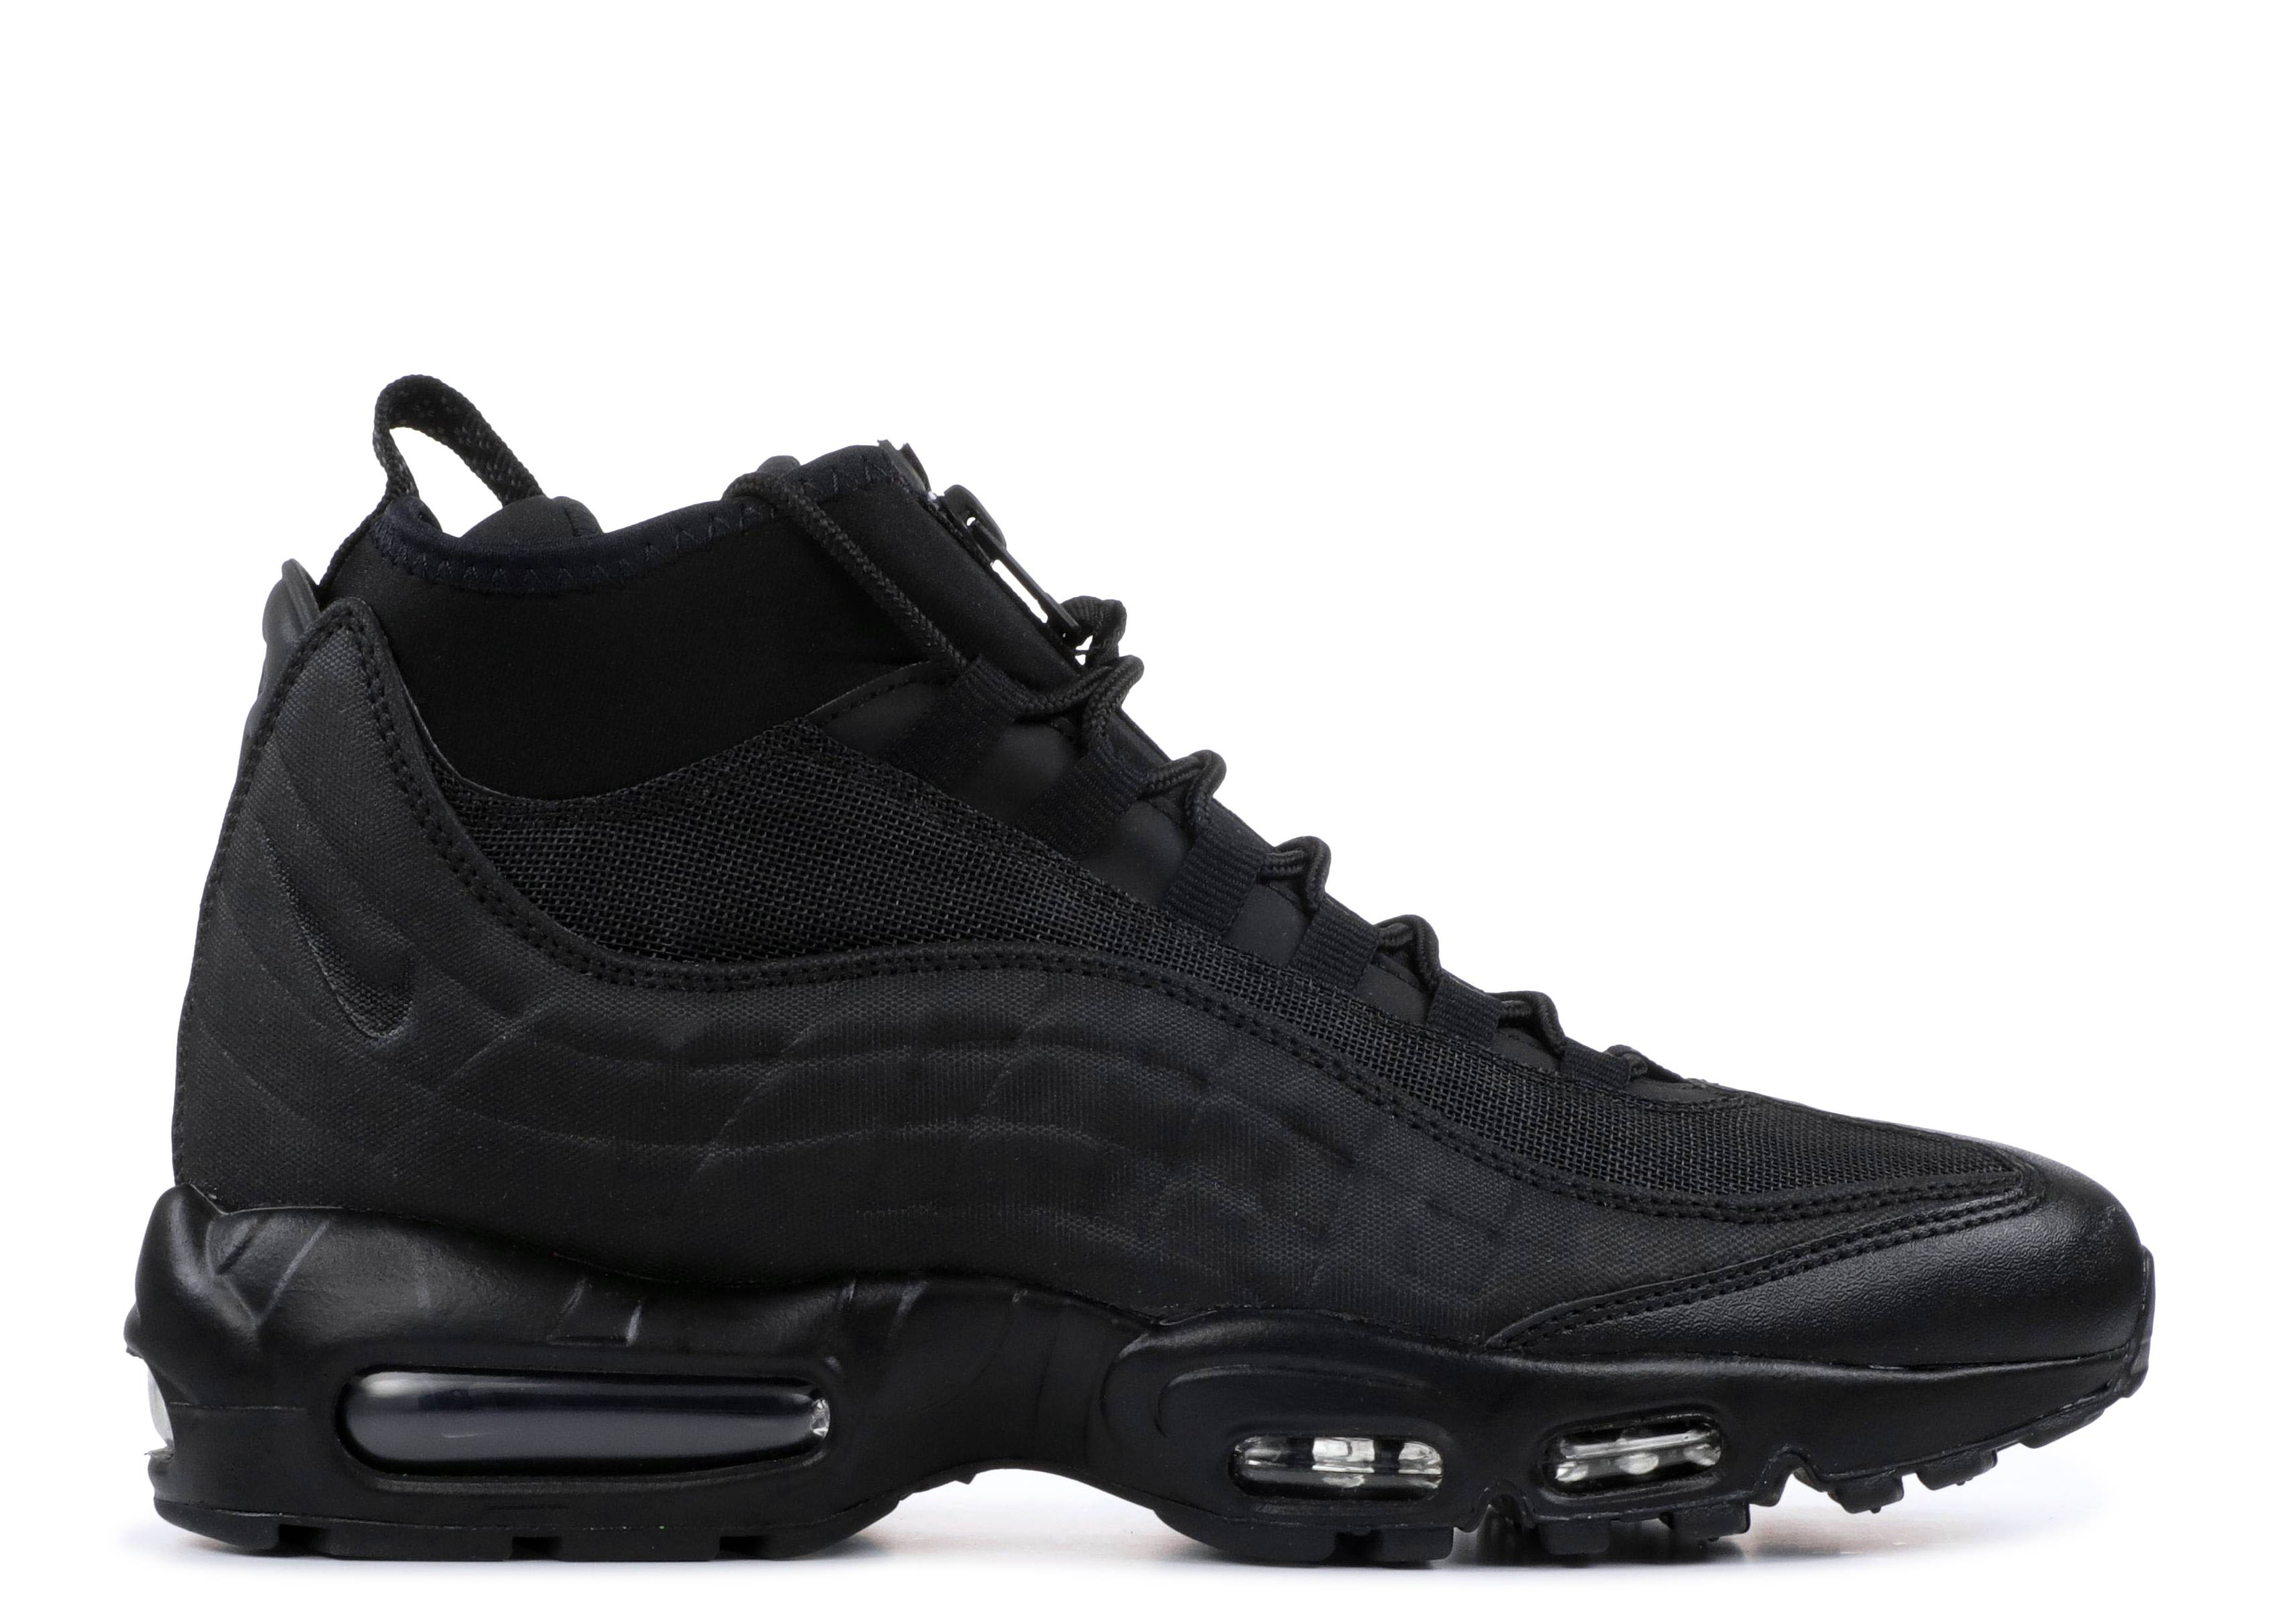 reputable site d404b d2d59 nike air max 95 sneakerboot